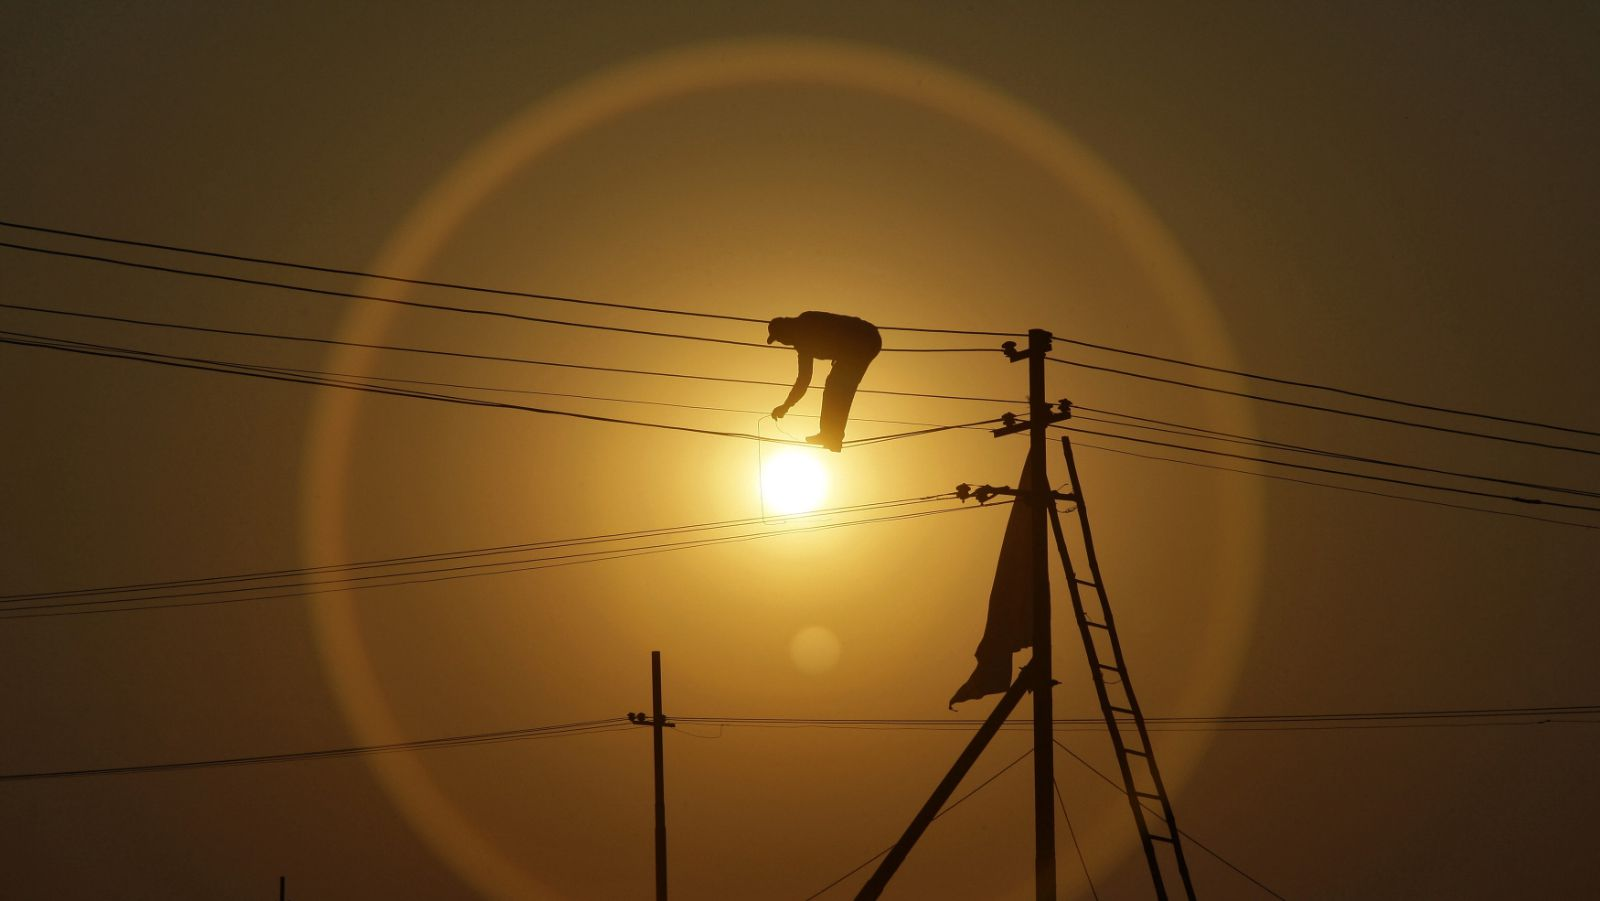 """An employee from the electricity board works on newly installed overhead power cables ahead of the """"Kumbh Mela"""", or Pitcher Festival, as the sun sets in the northern Indian city of Allahabad December 7, 2012."""